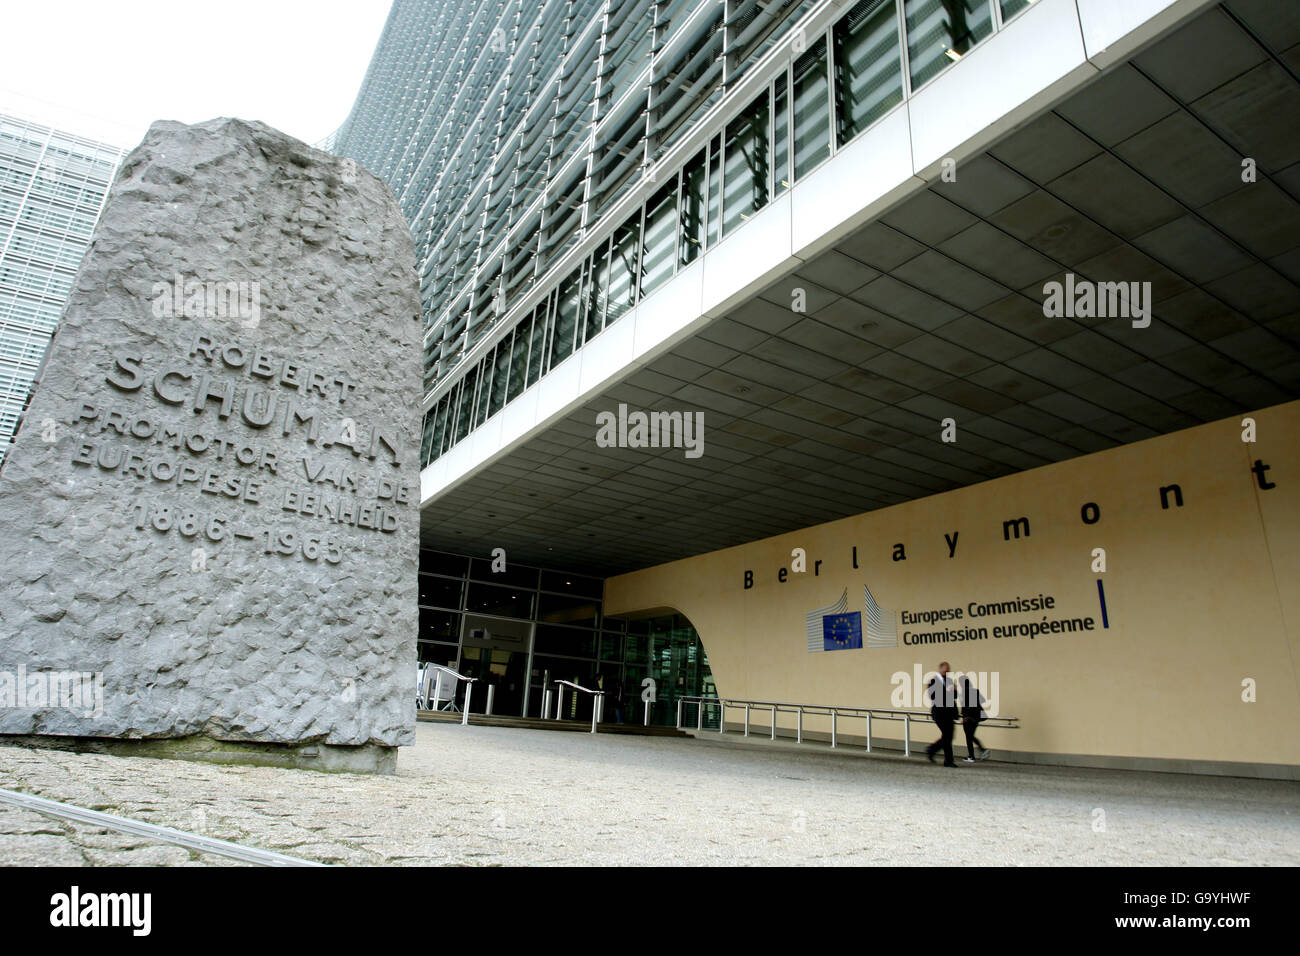 Brussels,Belgium,04/07/2016 Berlaymont Building European Commission Headquarters - Stock Image